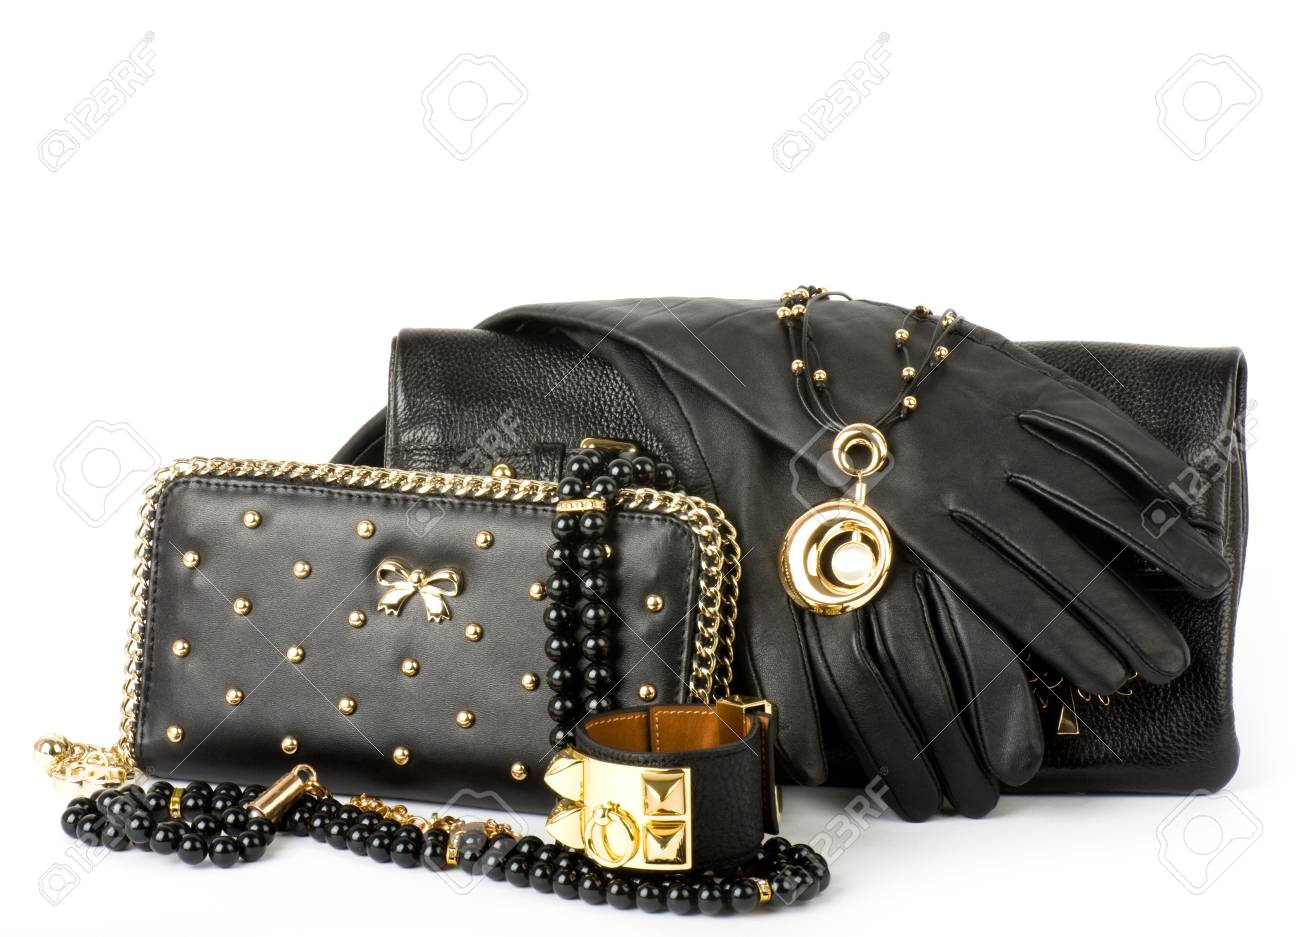 Sexy fashionable handbag and golden jewelry on white background Stock Photo - 12886203